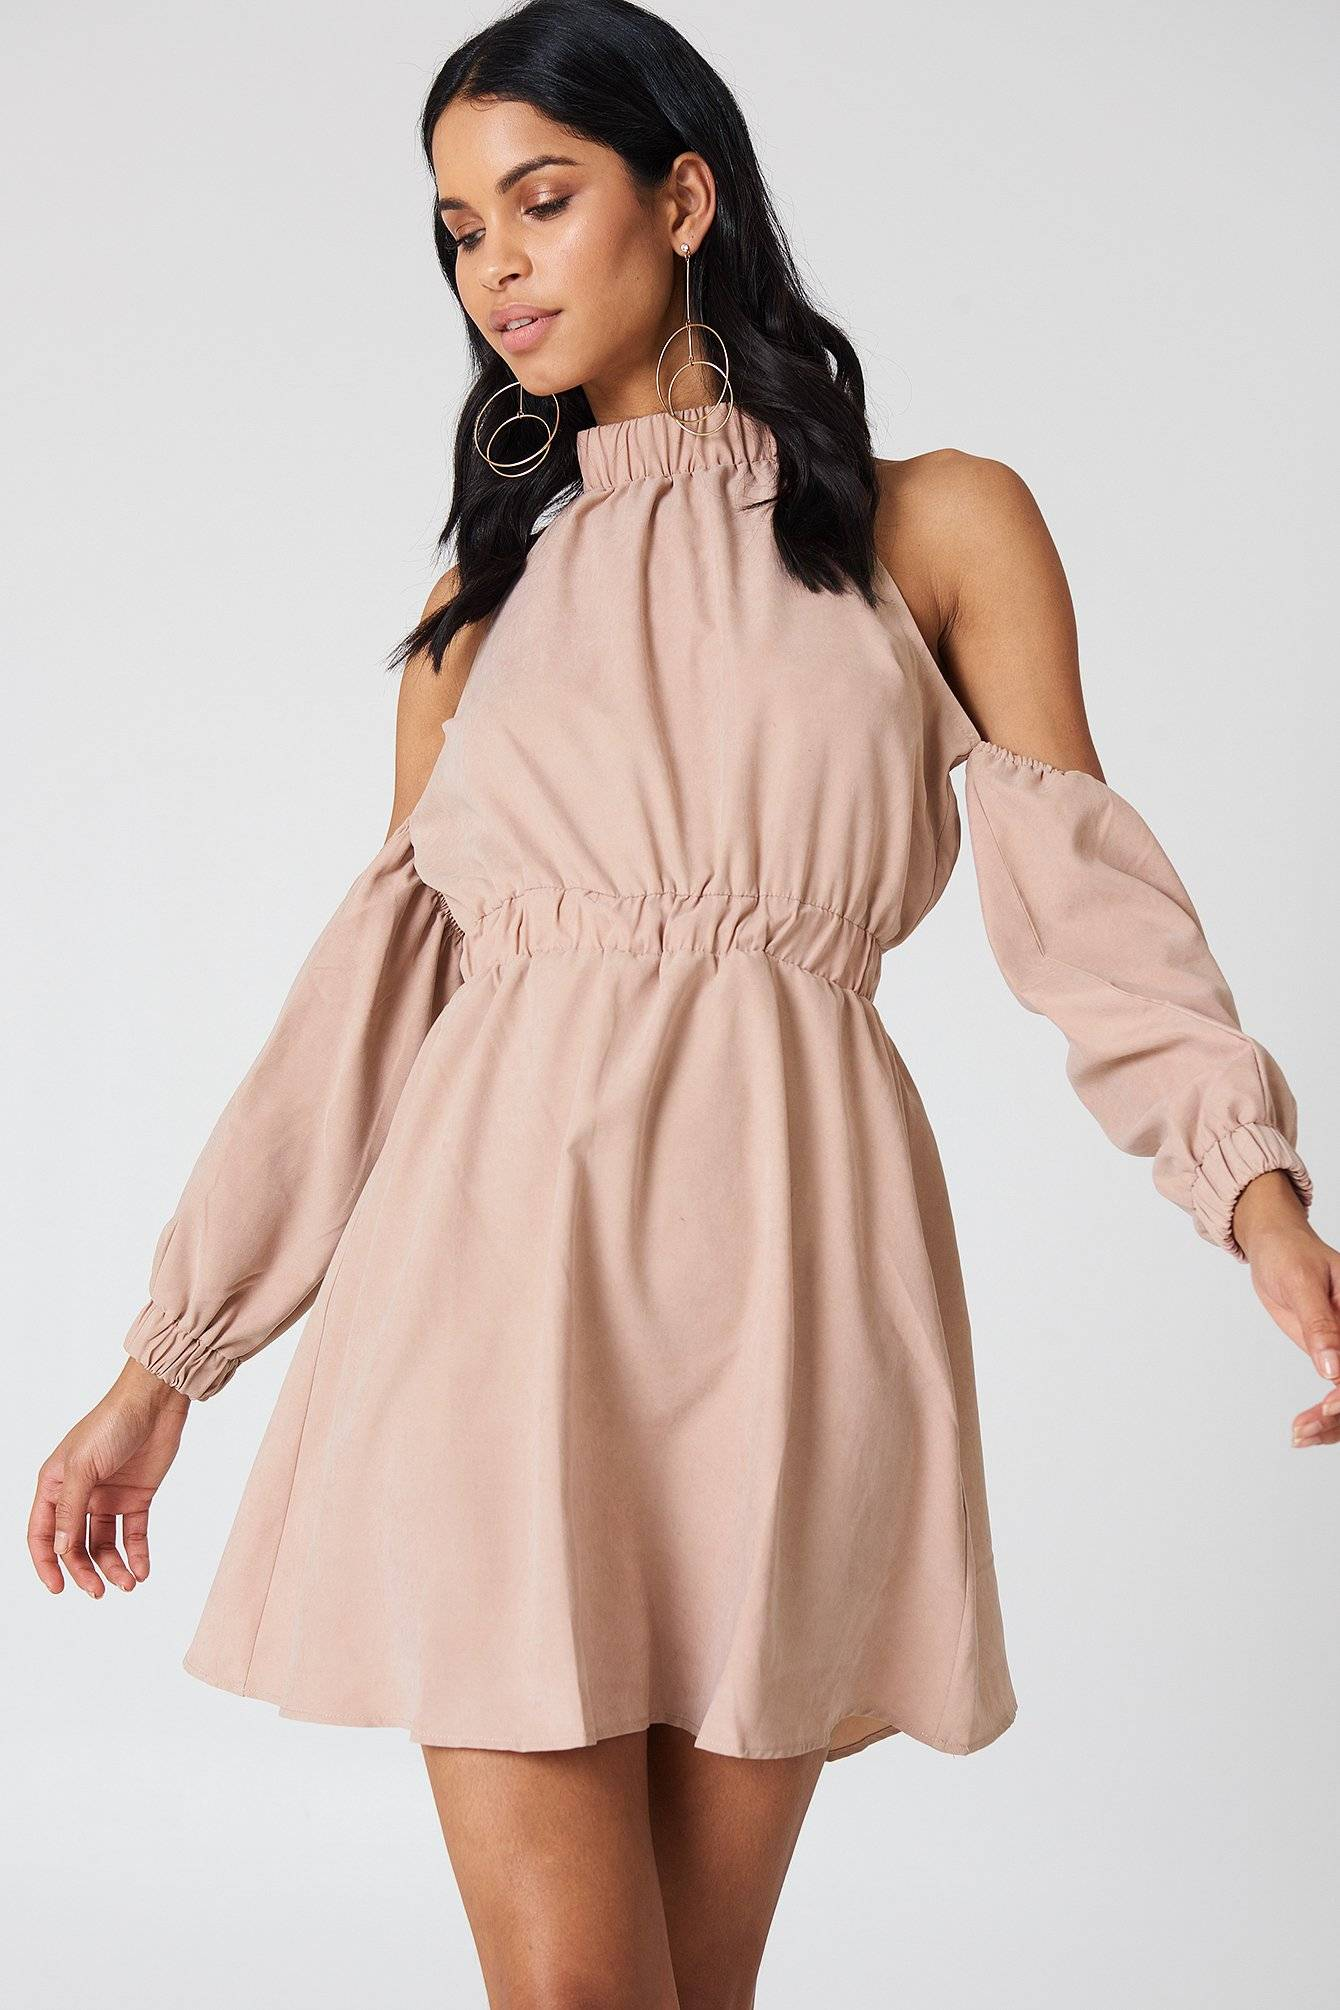 Lucca Couture Peyton Cold Shoulder Dress - Pink